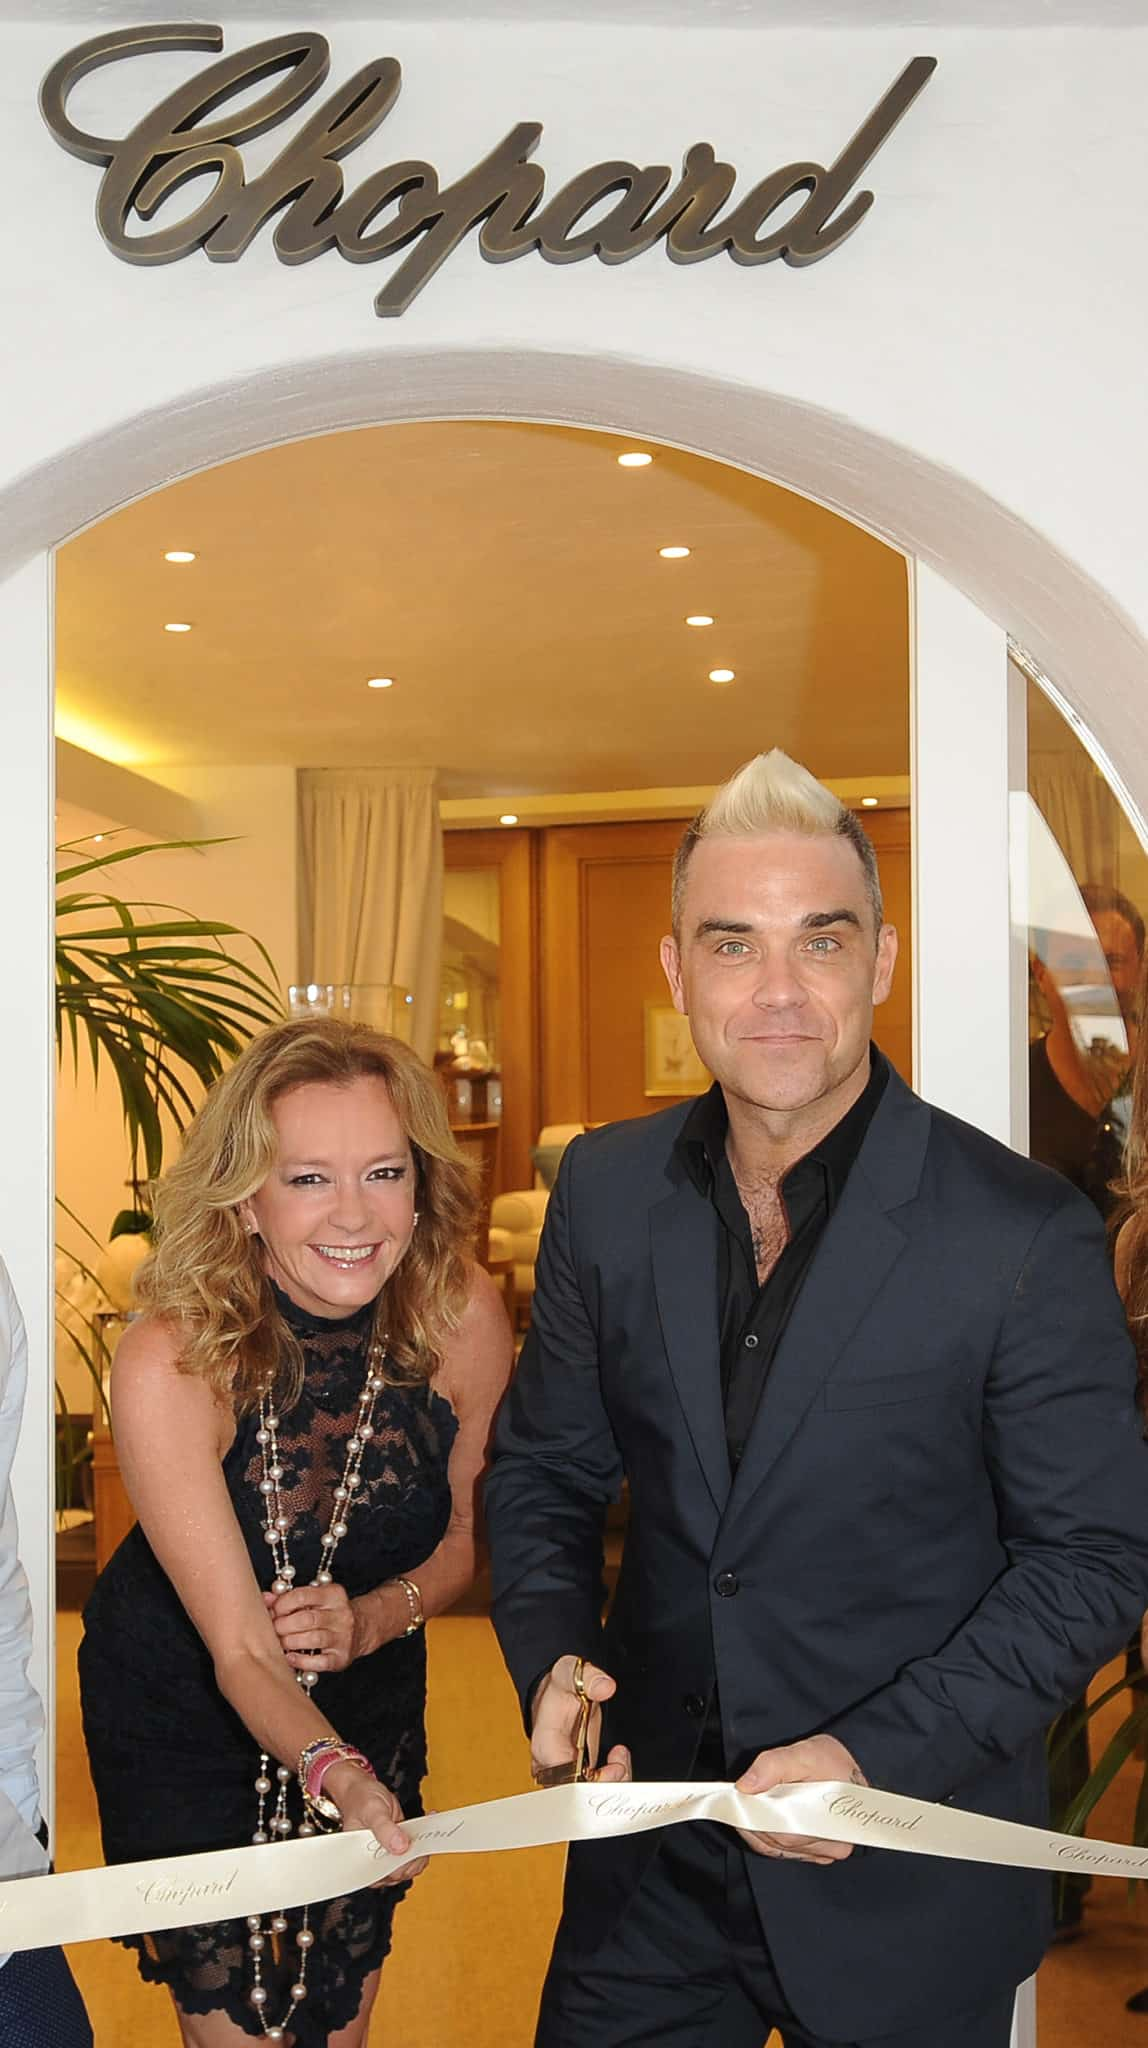 Caroline Scheufele and Robbie Williams cutting the ribbon for the boutique opening in 2015